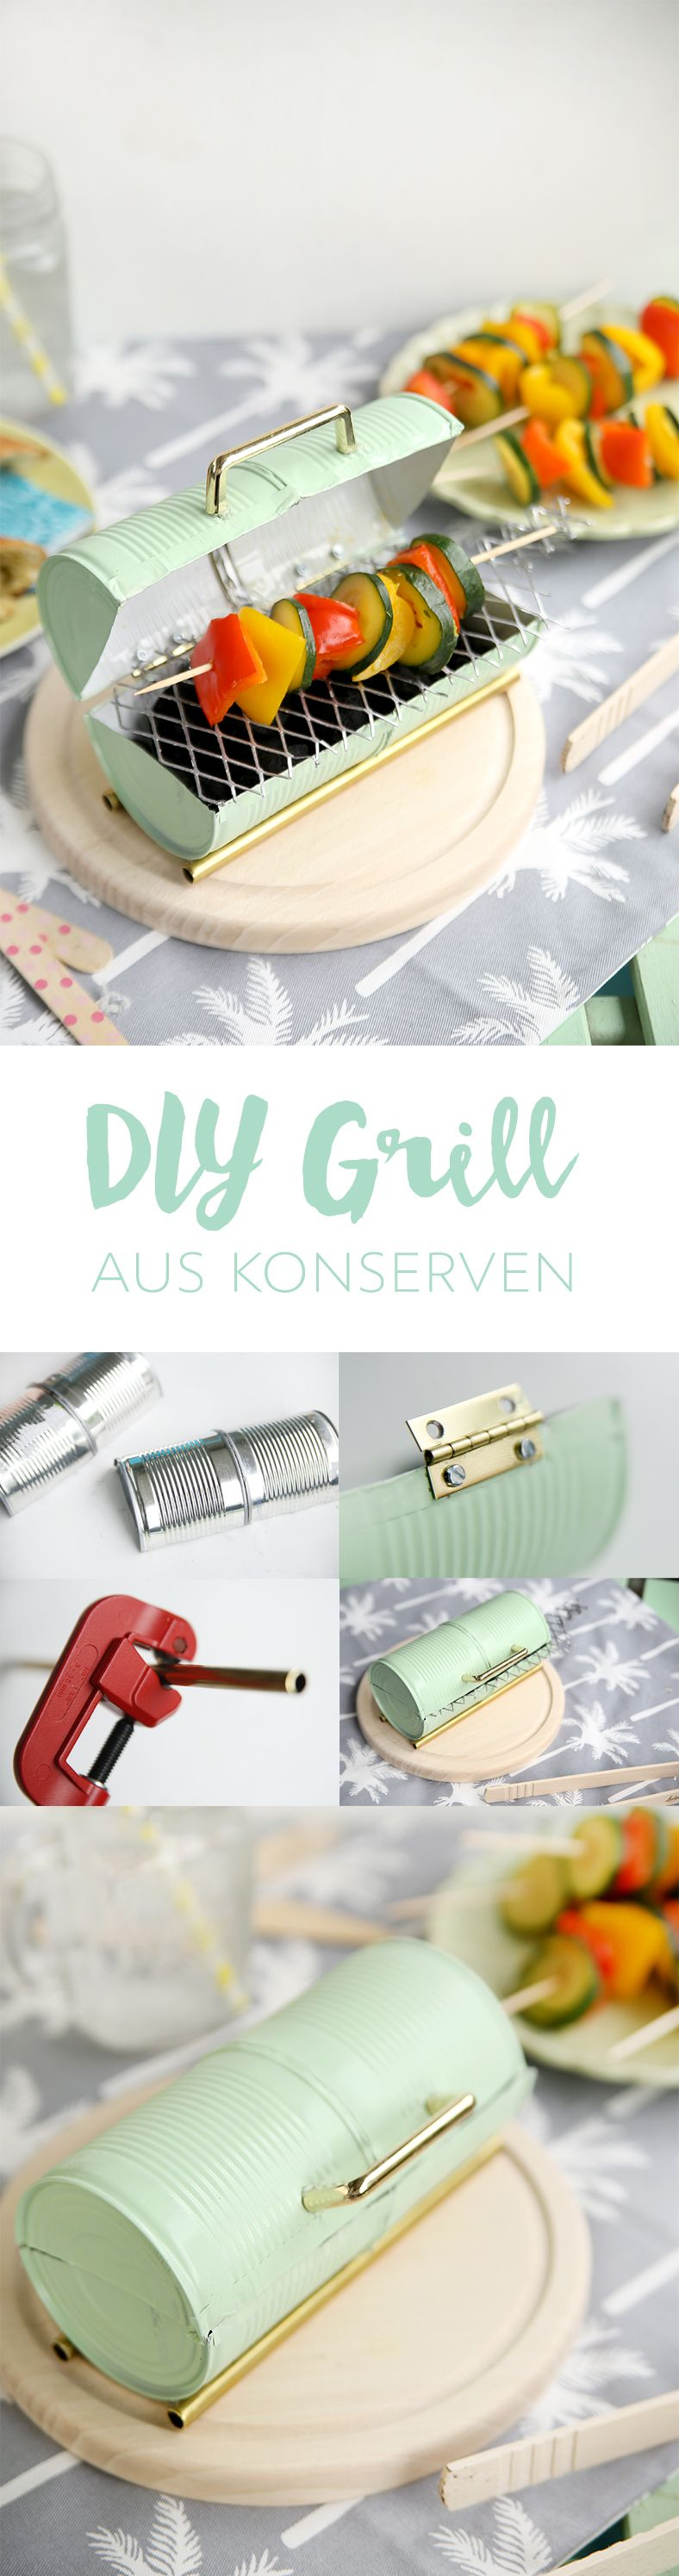 diy mini grill aus konserven selbstgemacht konservendosen grill und upcycling. Black Bedroom Furniture Sets. Home Design Ideas